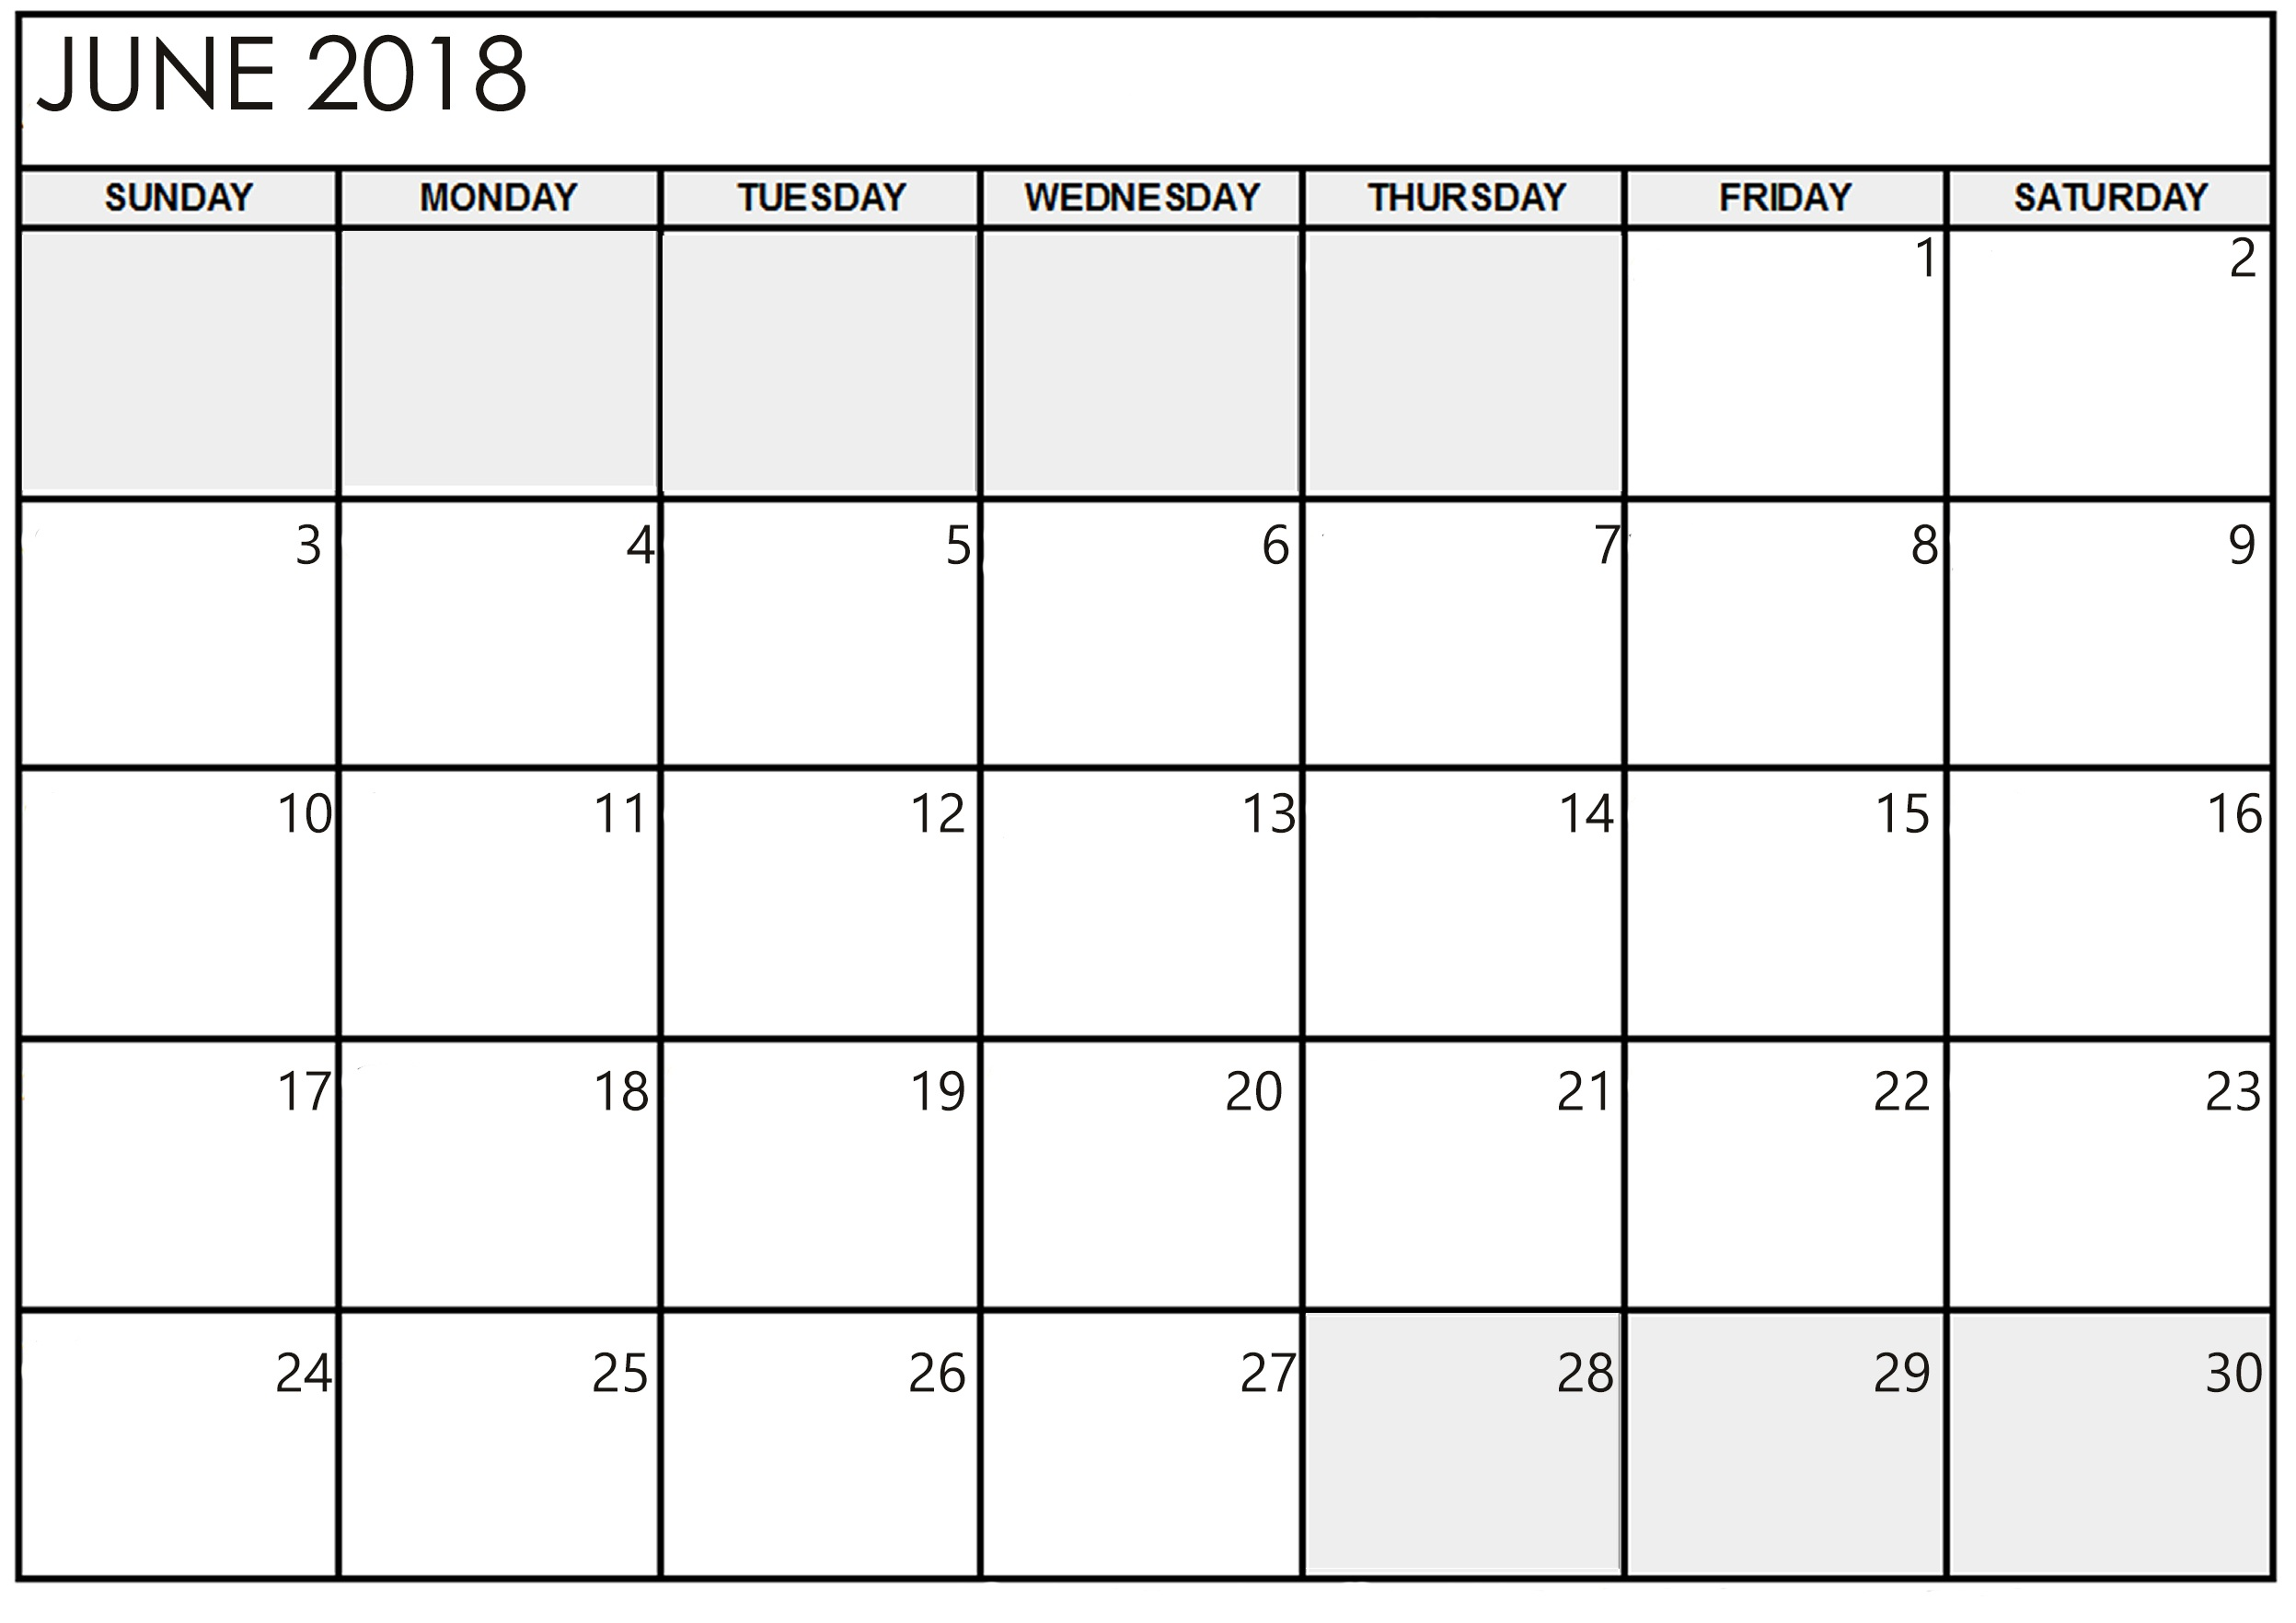 Calendar June 2018 In Printable Format